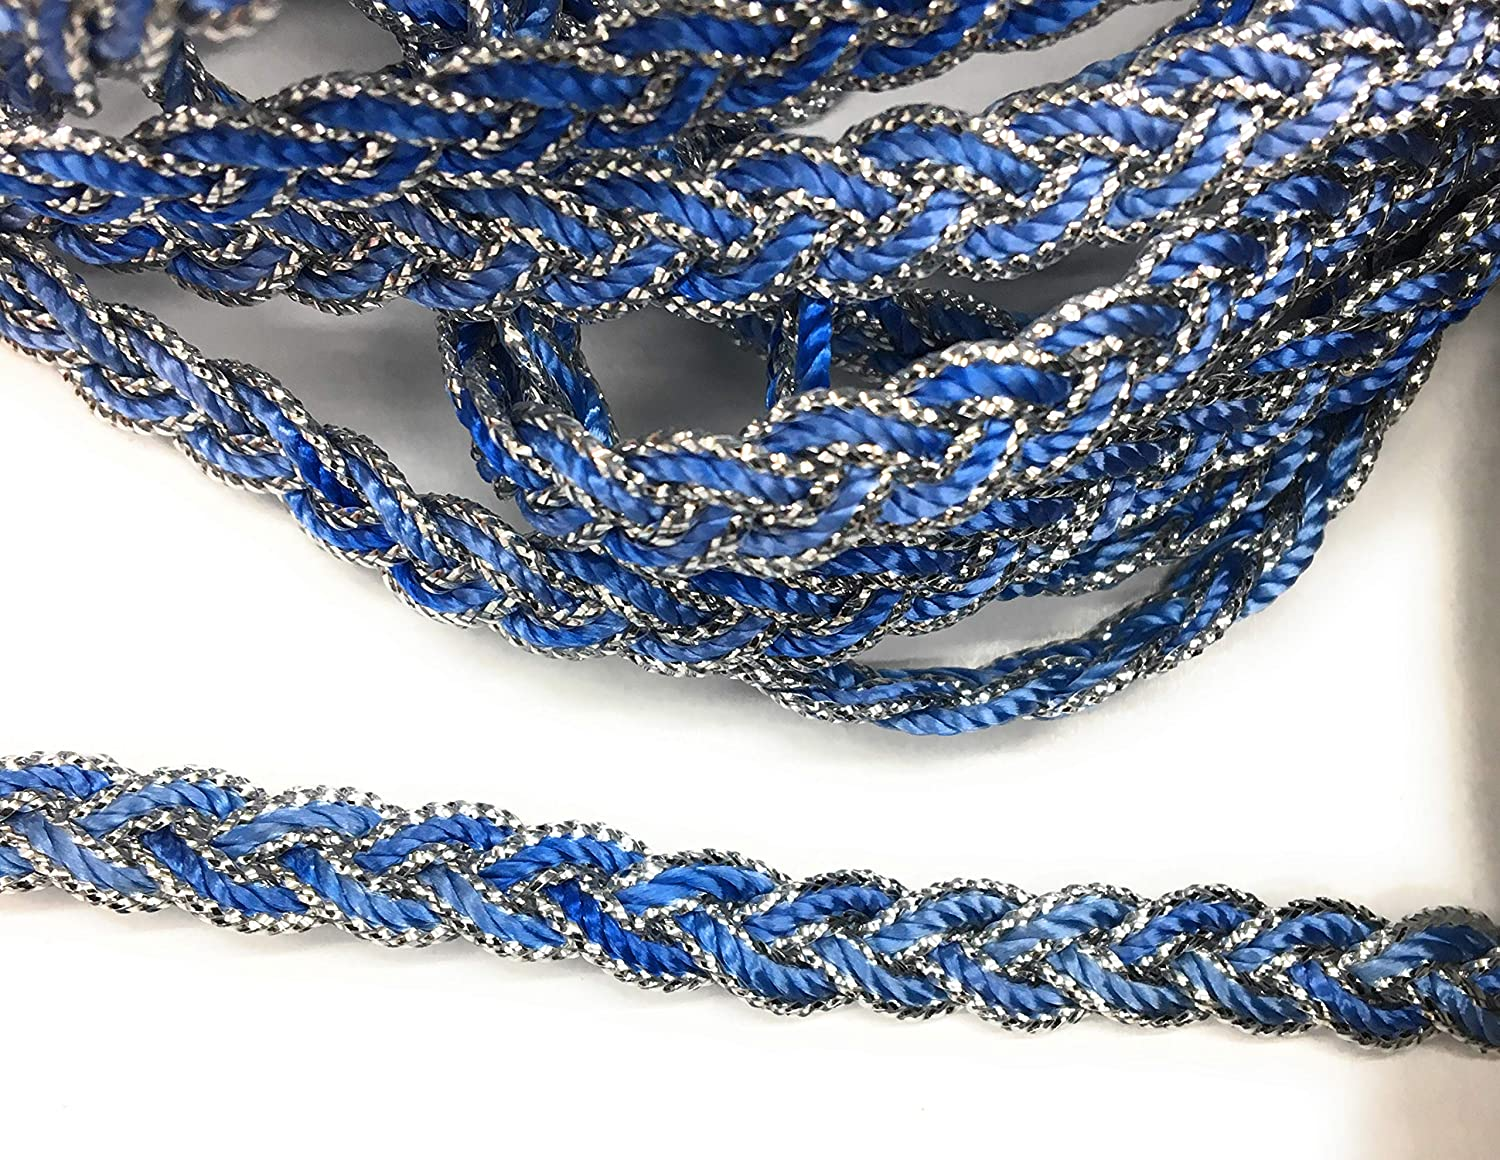 Trimmings 5 Yards 6mm Dress Trimming Silver Navy Braided Cord Braid Scallop Braid 3//8 Dress Trims Upholstery Trims